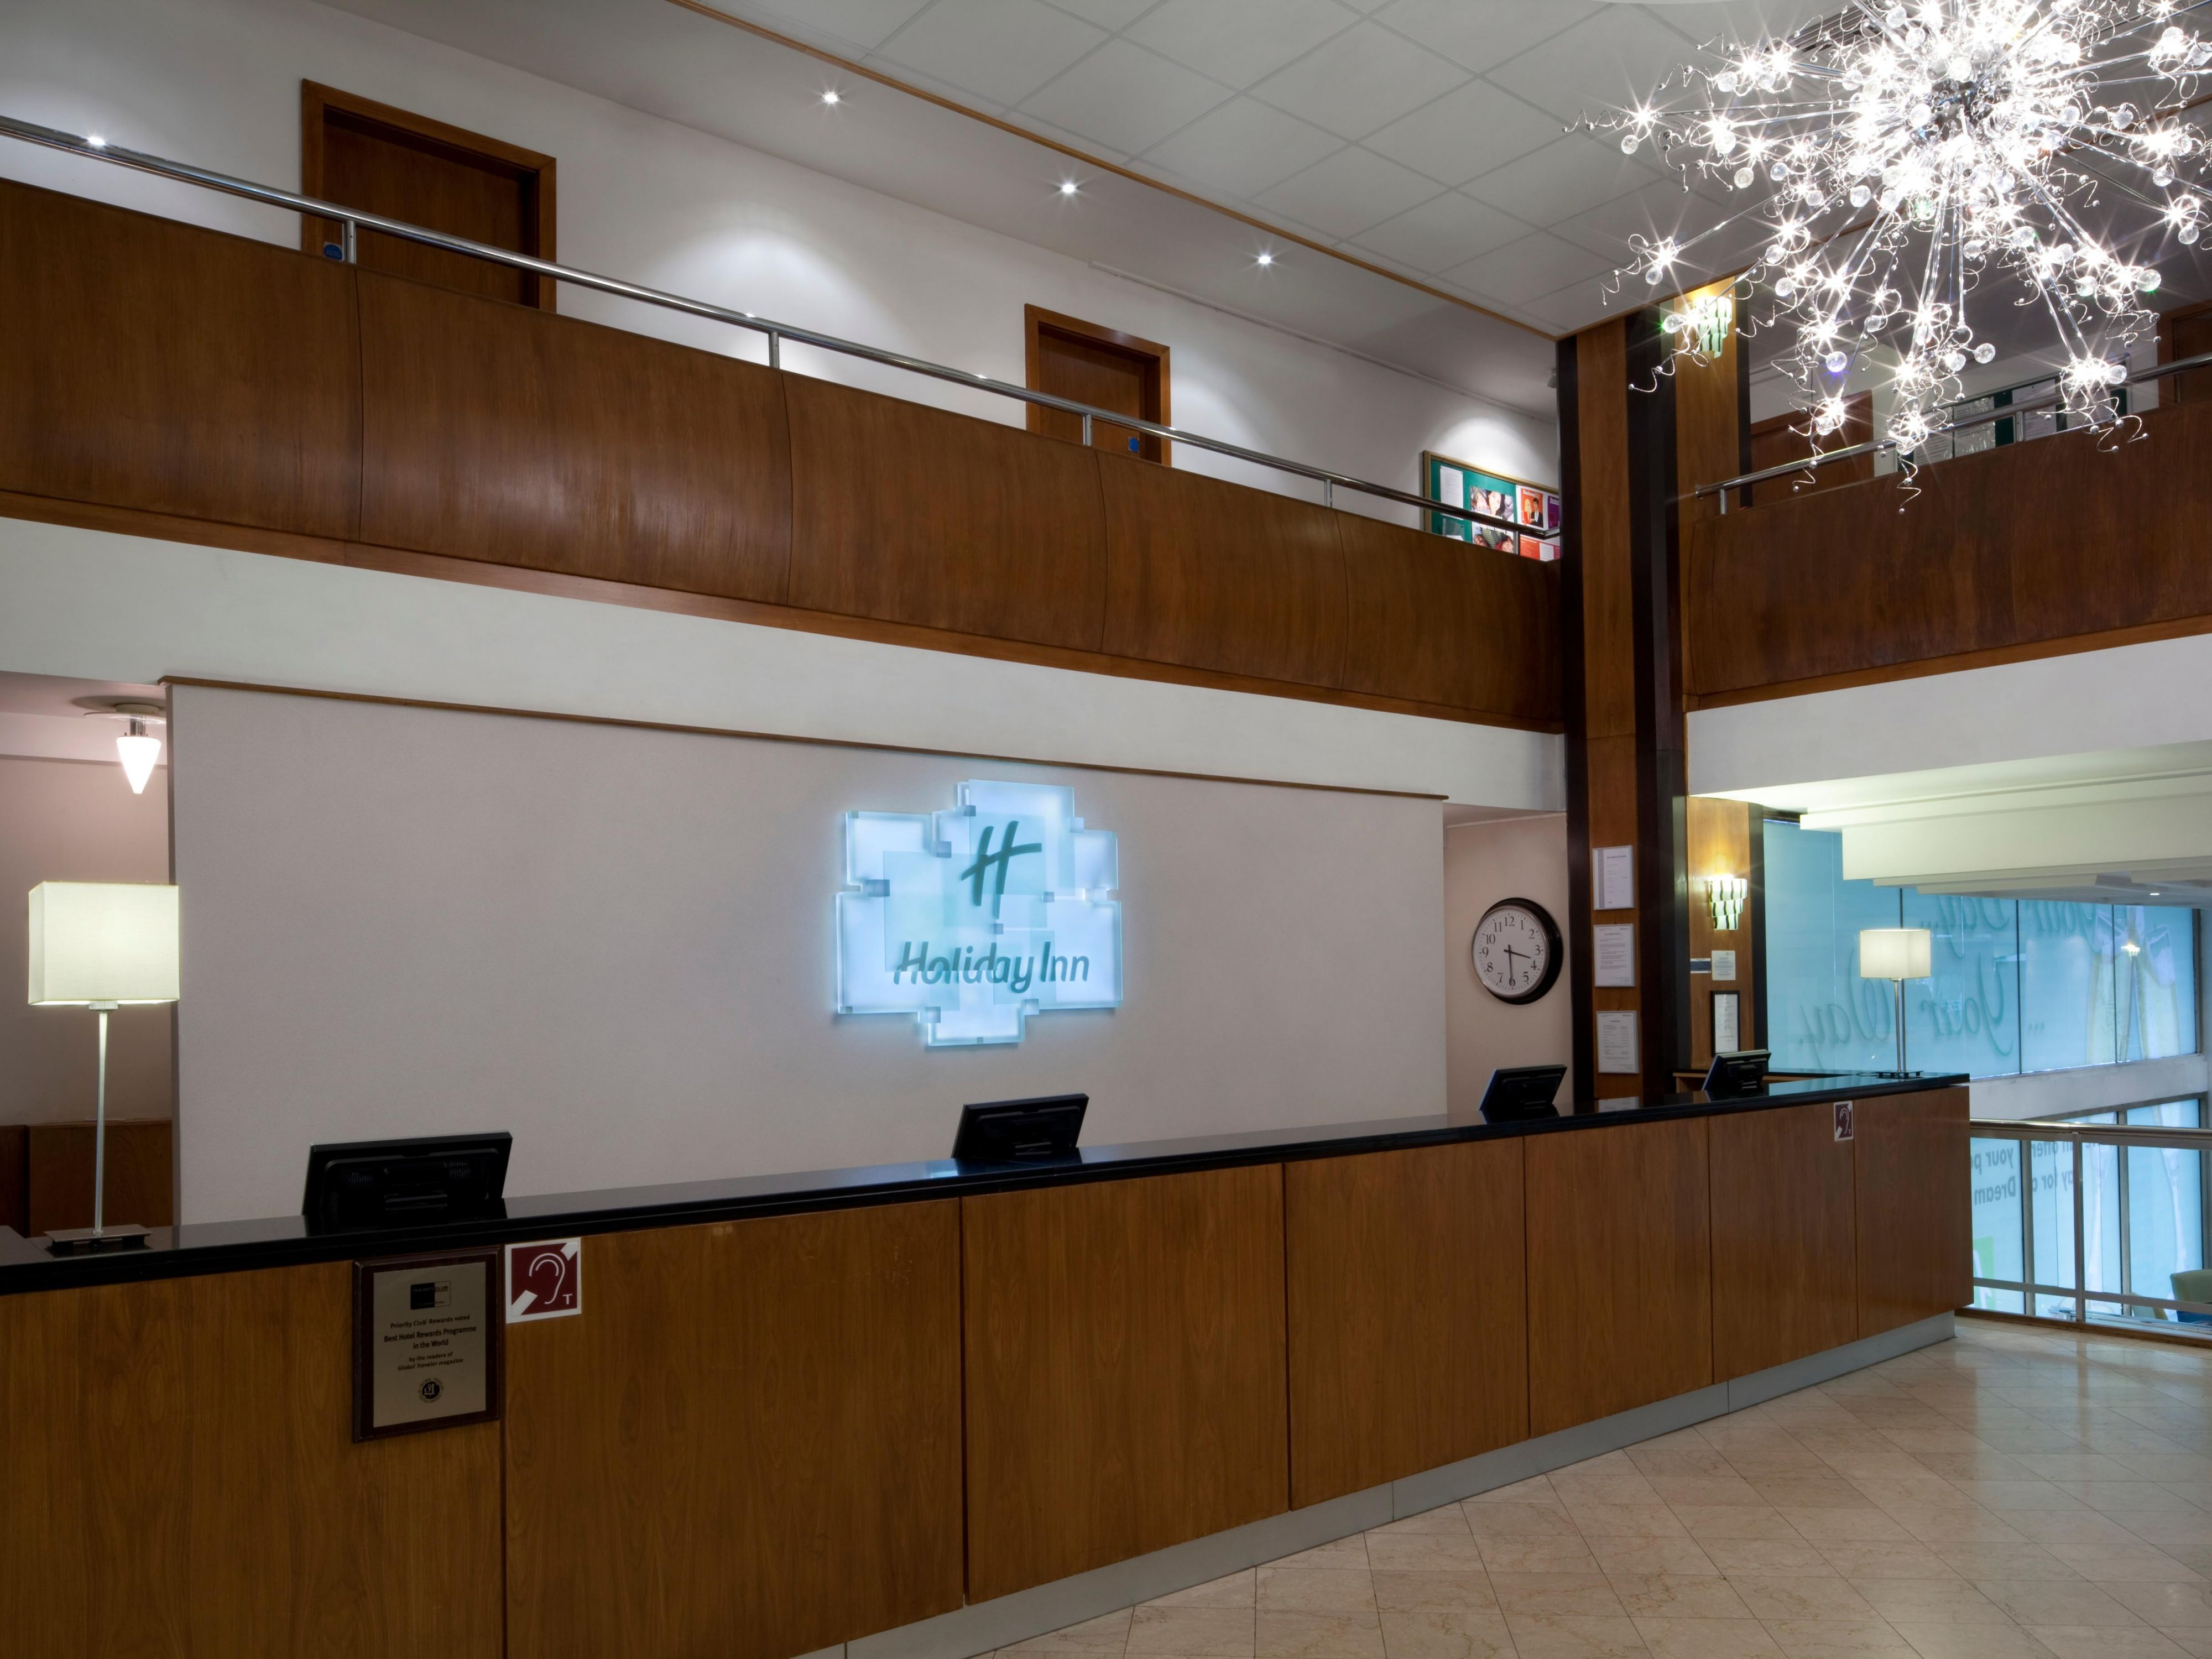 Reception welcomes you to The Holiday Inn Birmingham City Centre